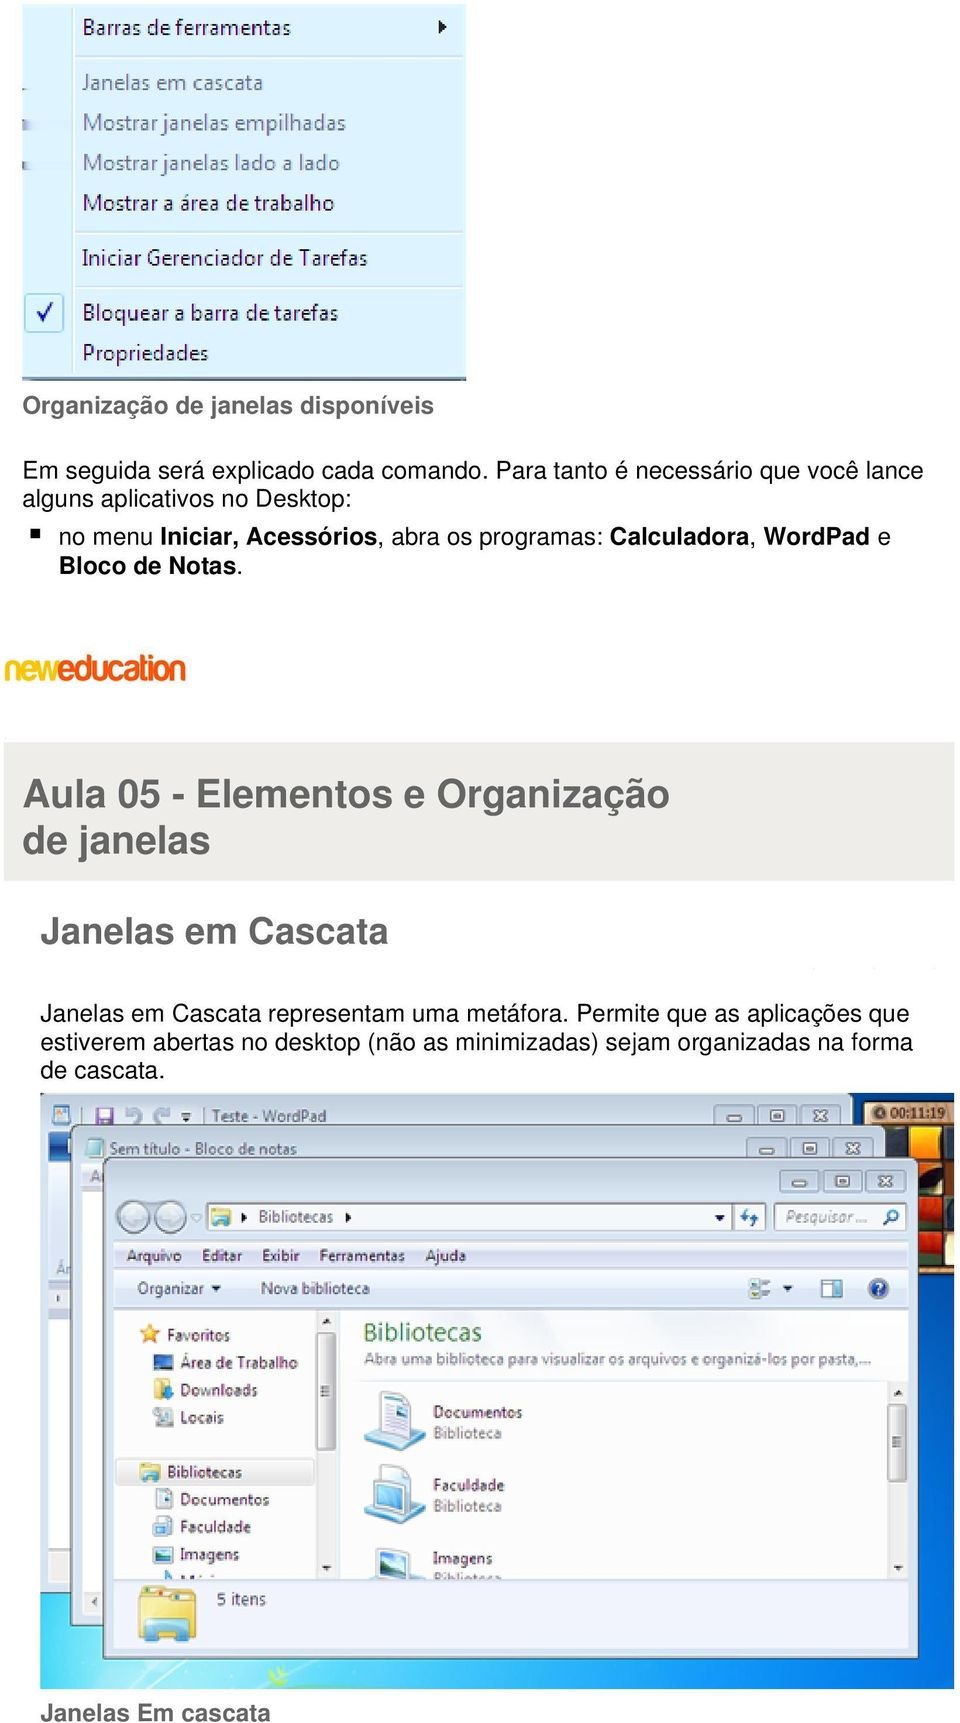 Calculadora, WordPad e Bloco de Notas.